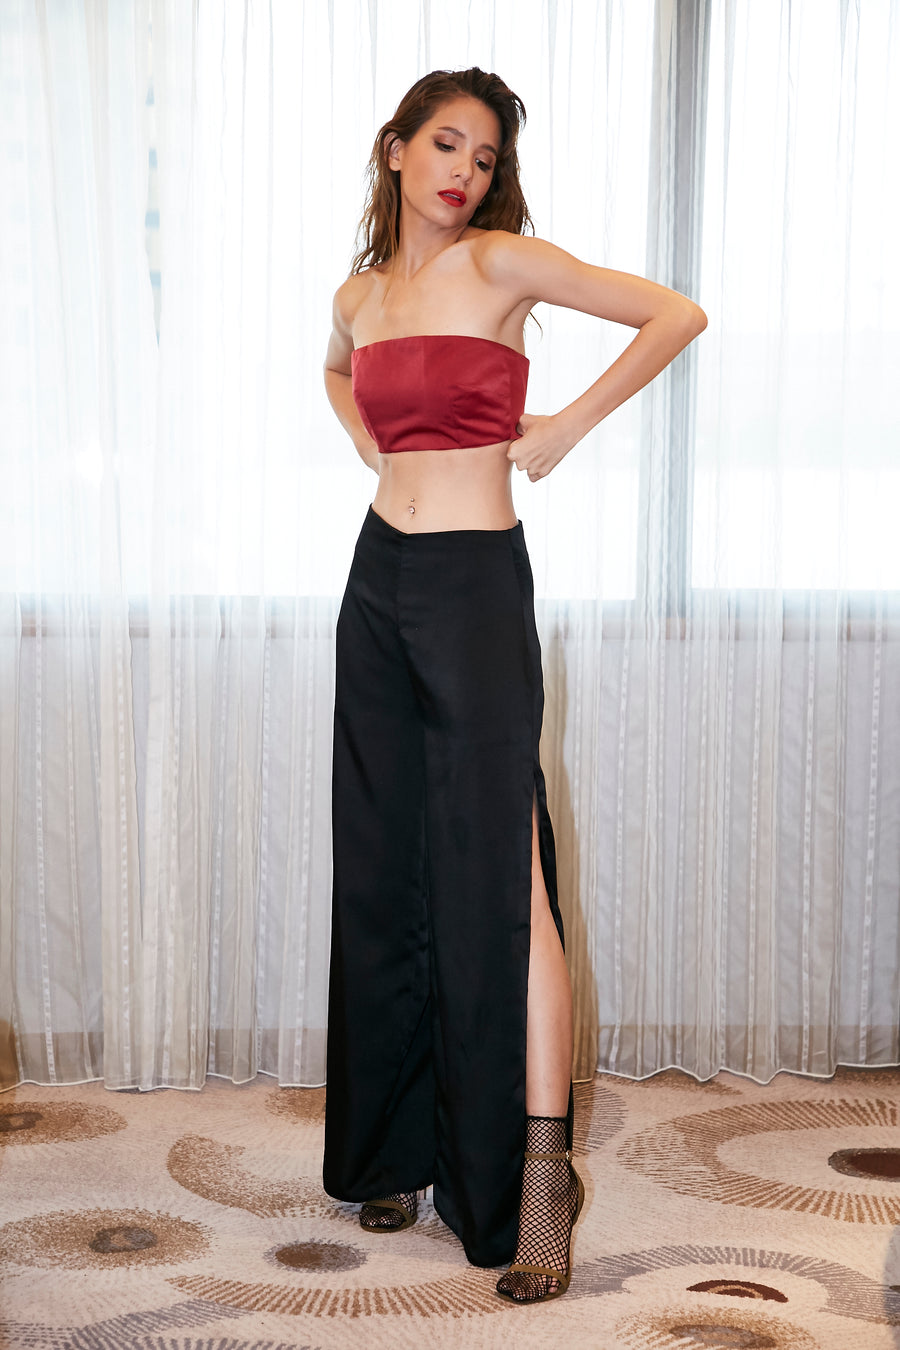 Strapless Top/Black Pants